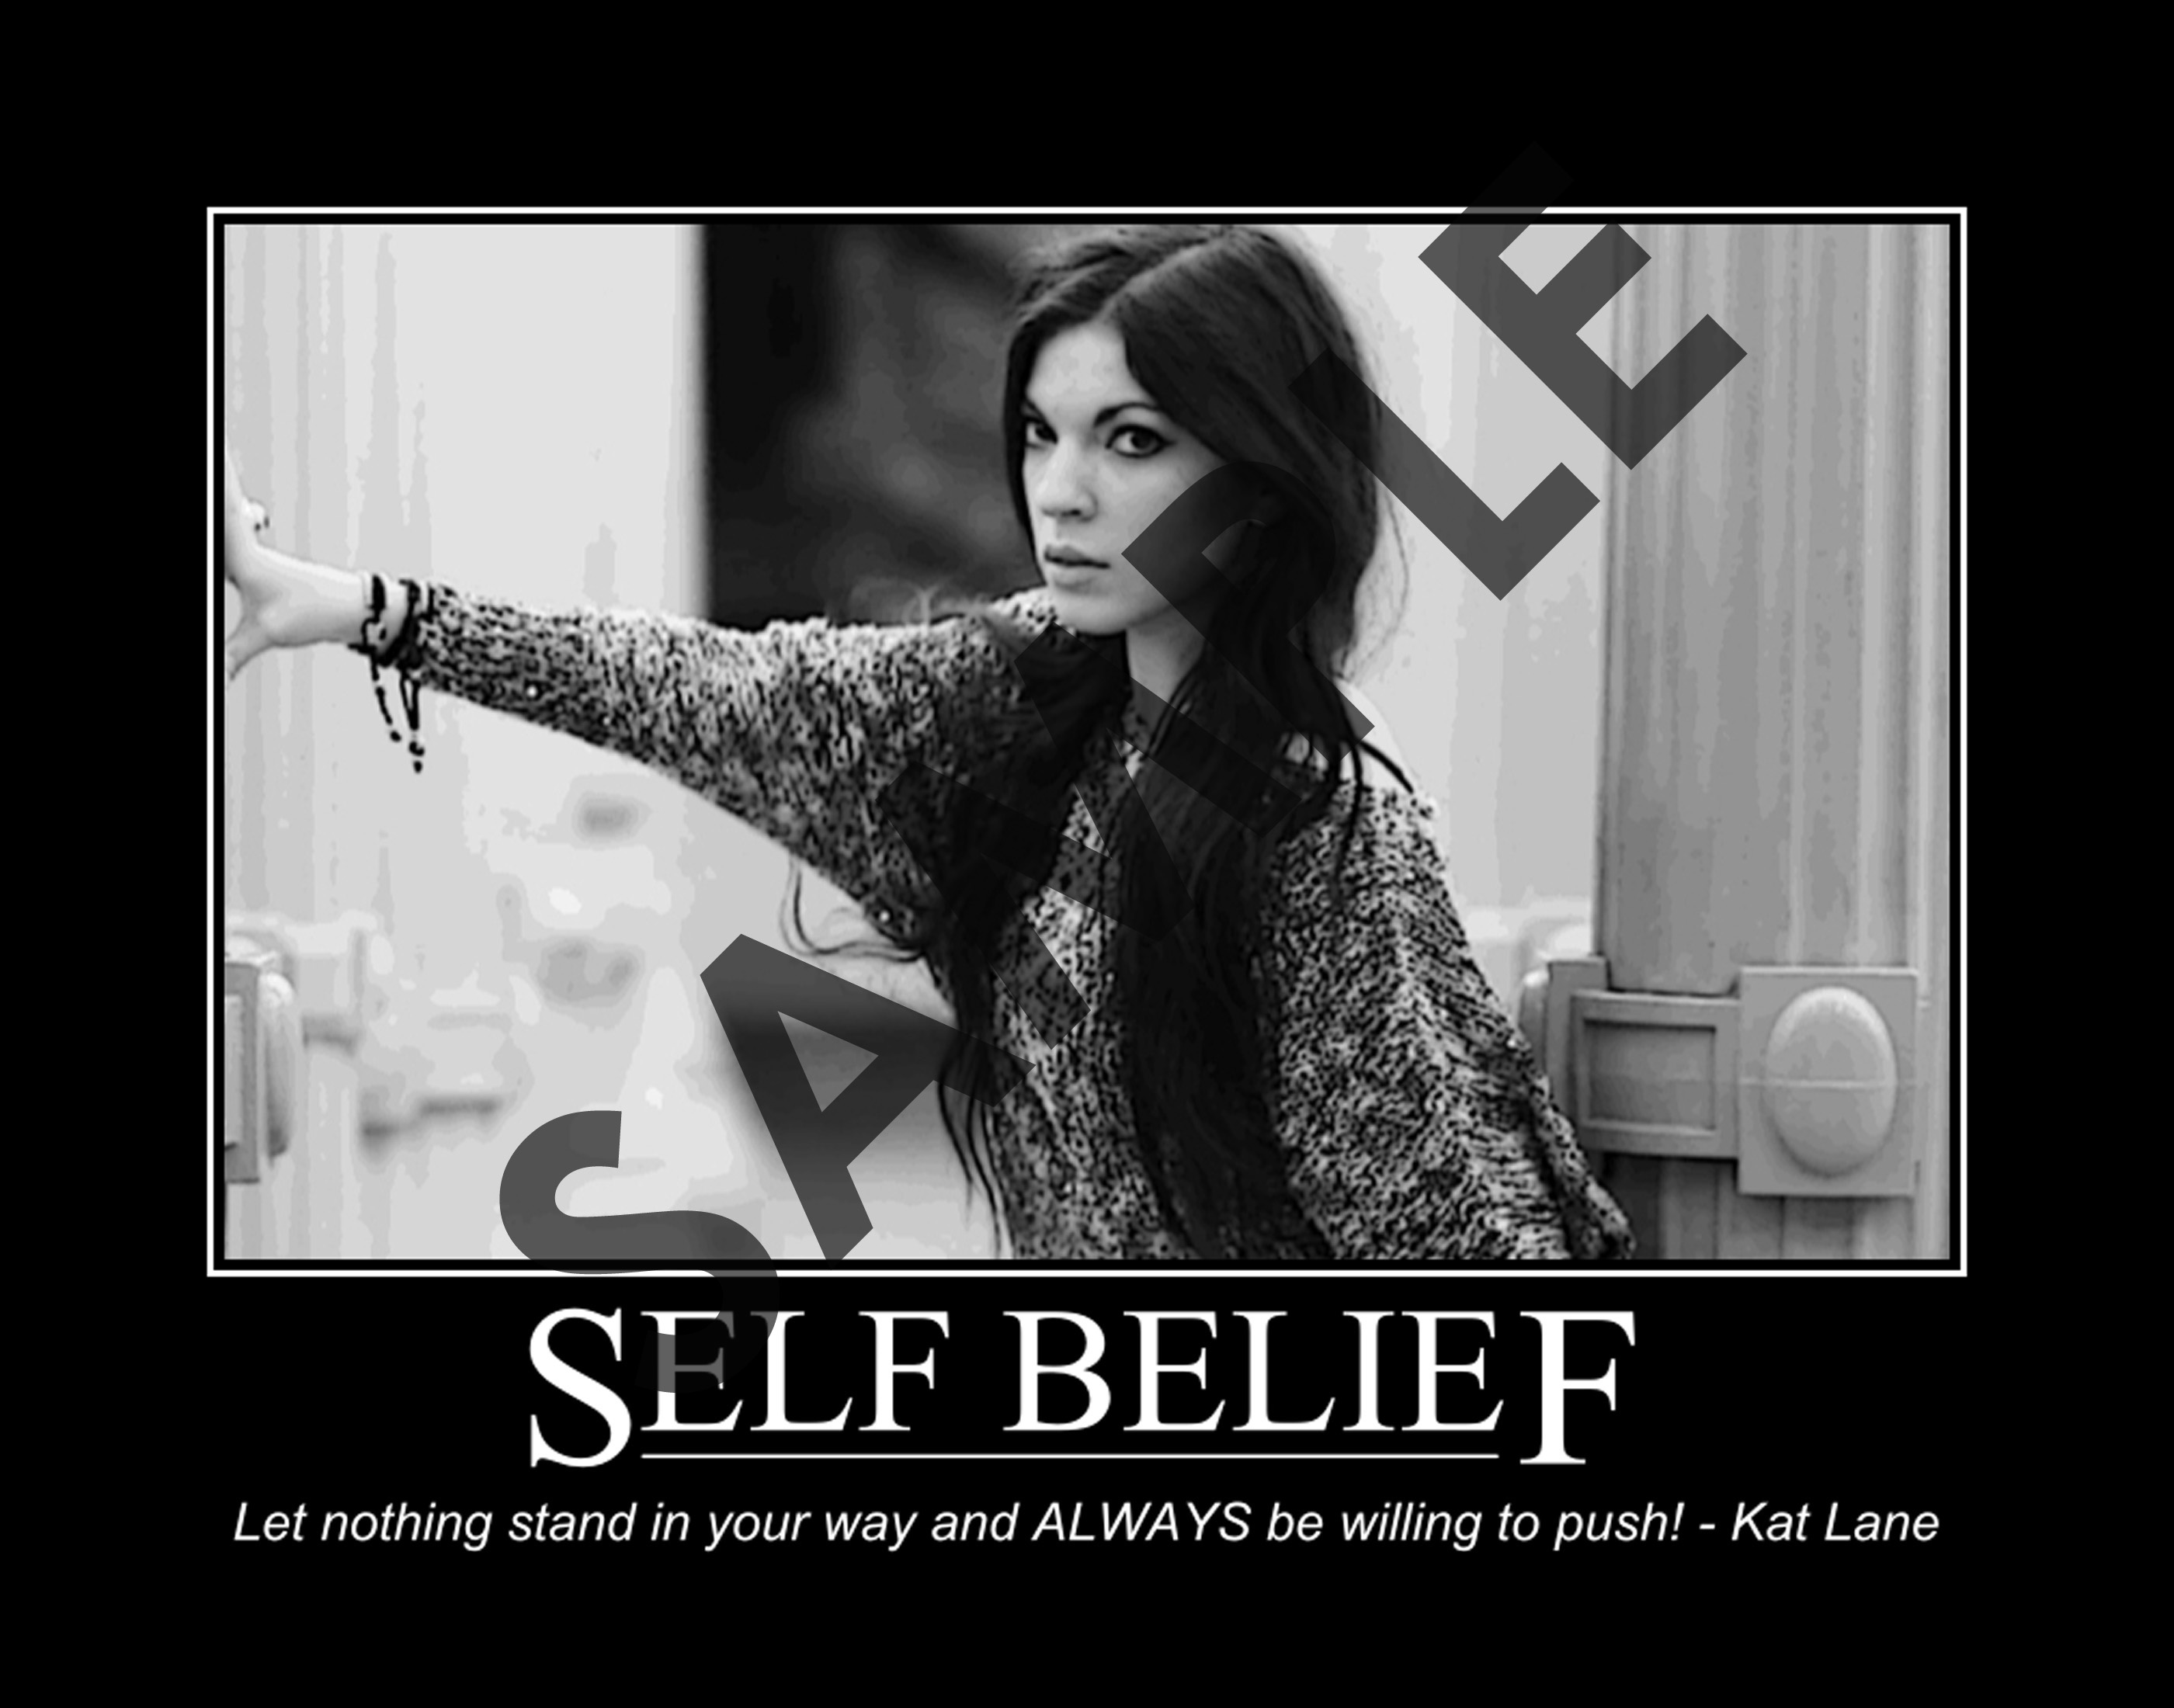 Self Belief, Let Nothing Stand In Your Own Way And Always Be Willing To Push - Kat Lane